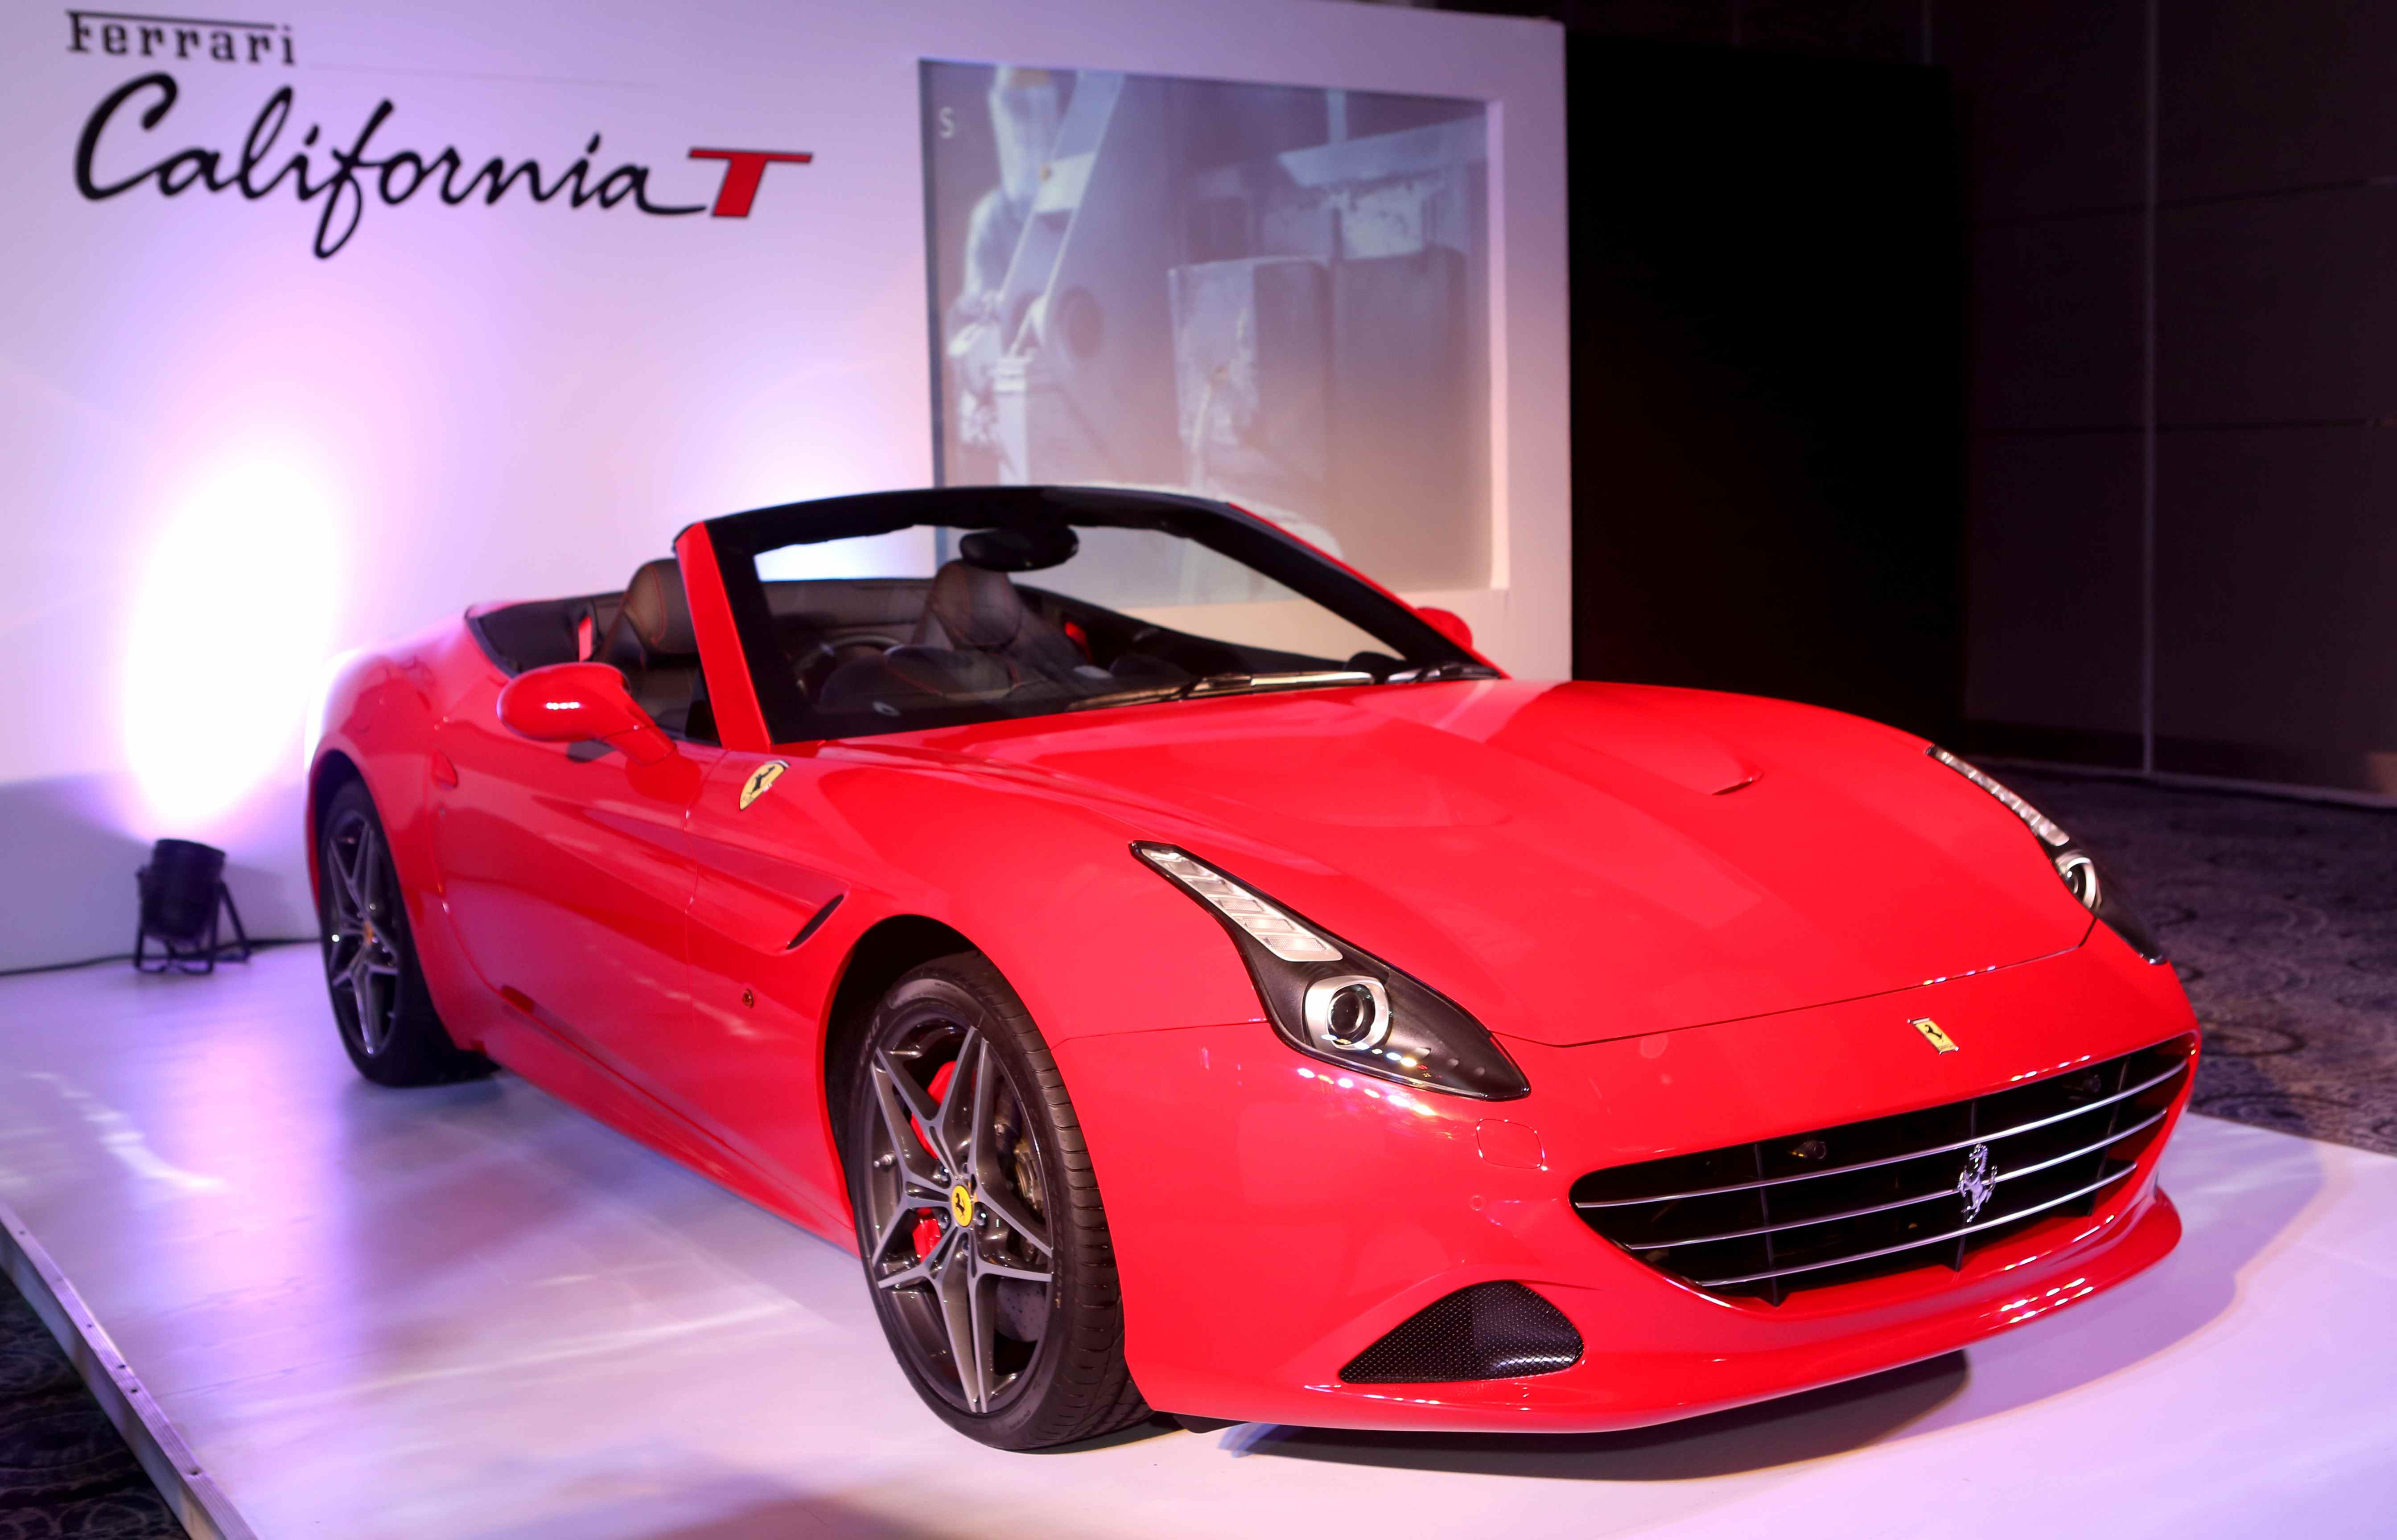 Ferrari Re-Launched in India  California T Priced at INR 3.45 Cr 1143d0722a14